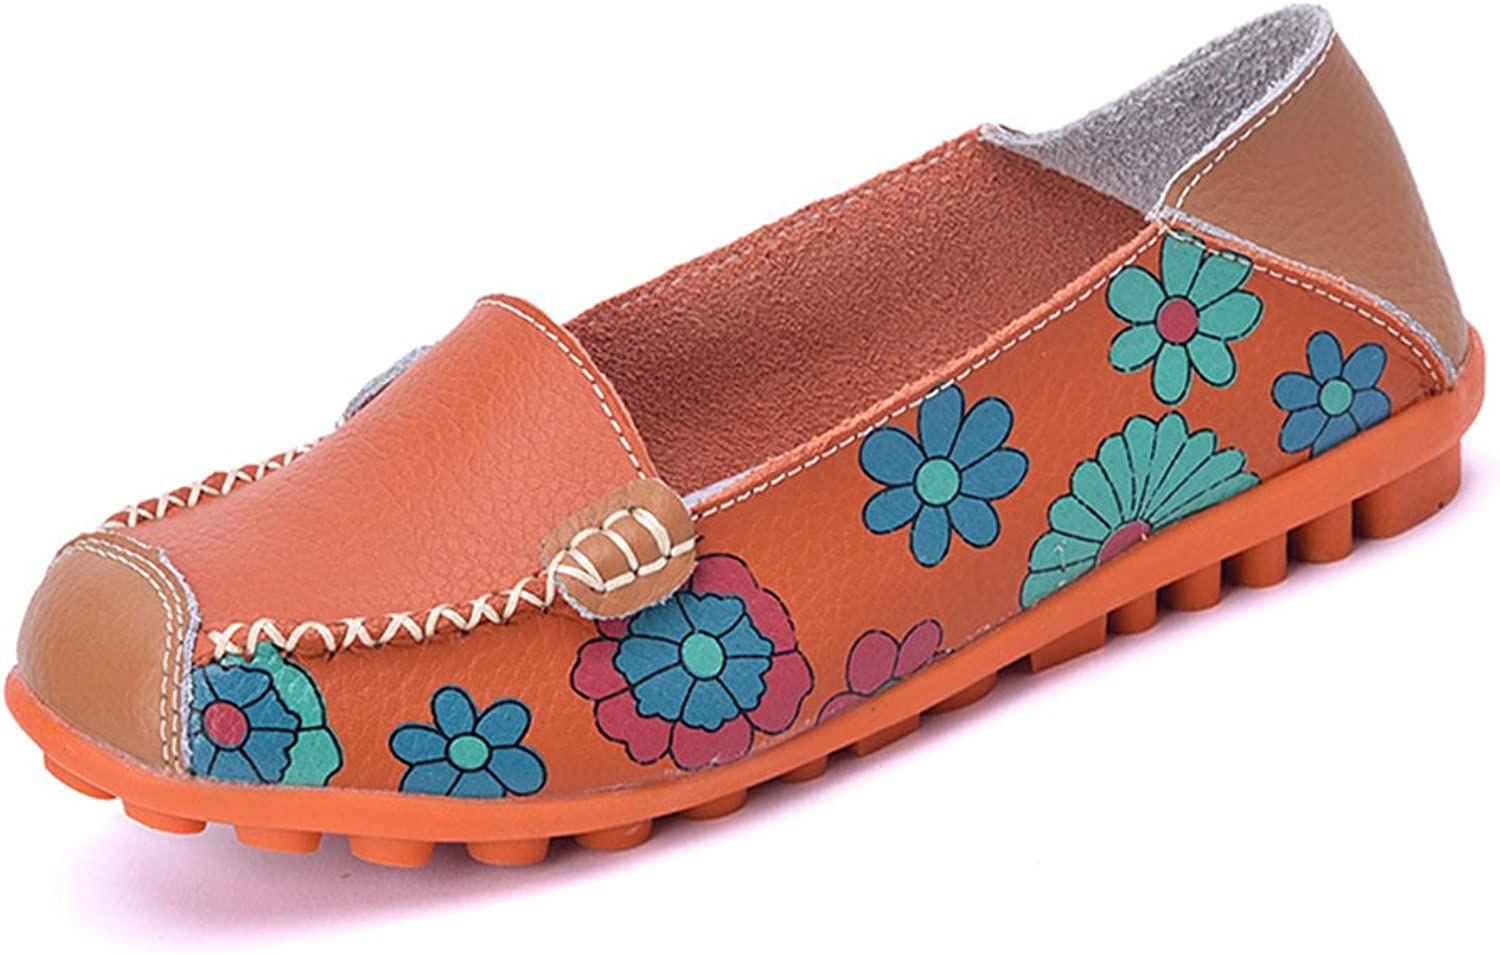 KEESKY Women's Floral Print Driving Loafers Leather Slip-on Flat Casual shoes